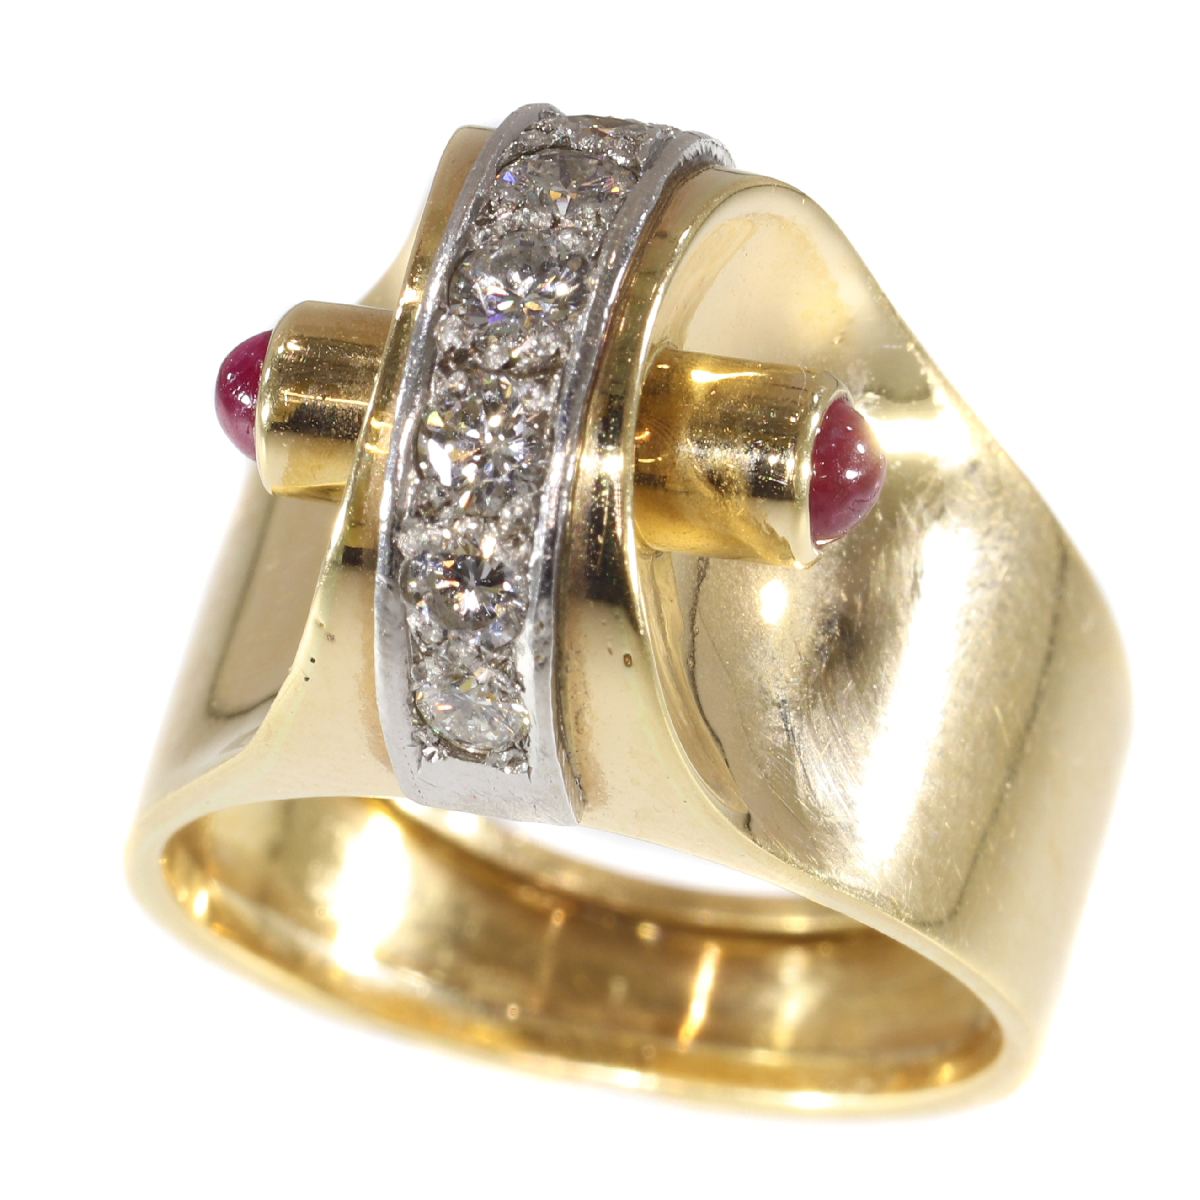 Extrovert and stylish red gold vintage Art Retro ring with diamonds and rubies